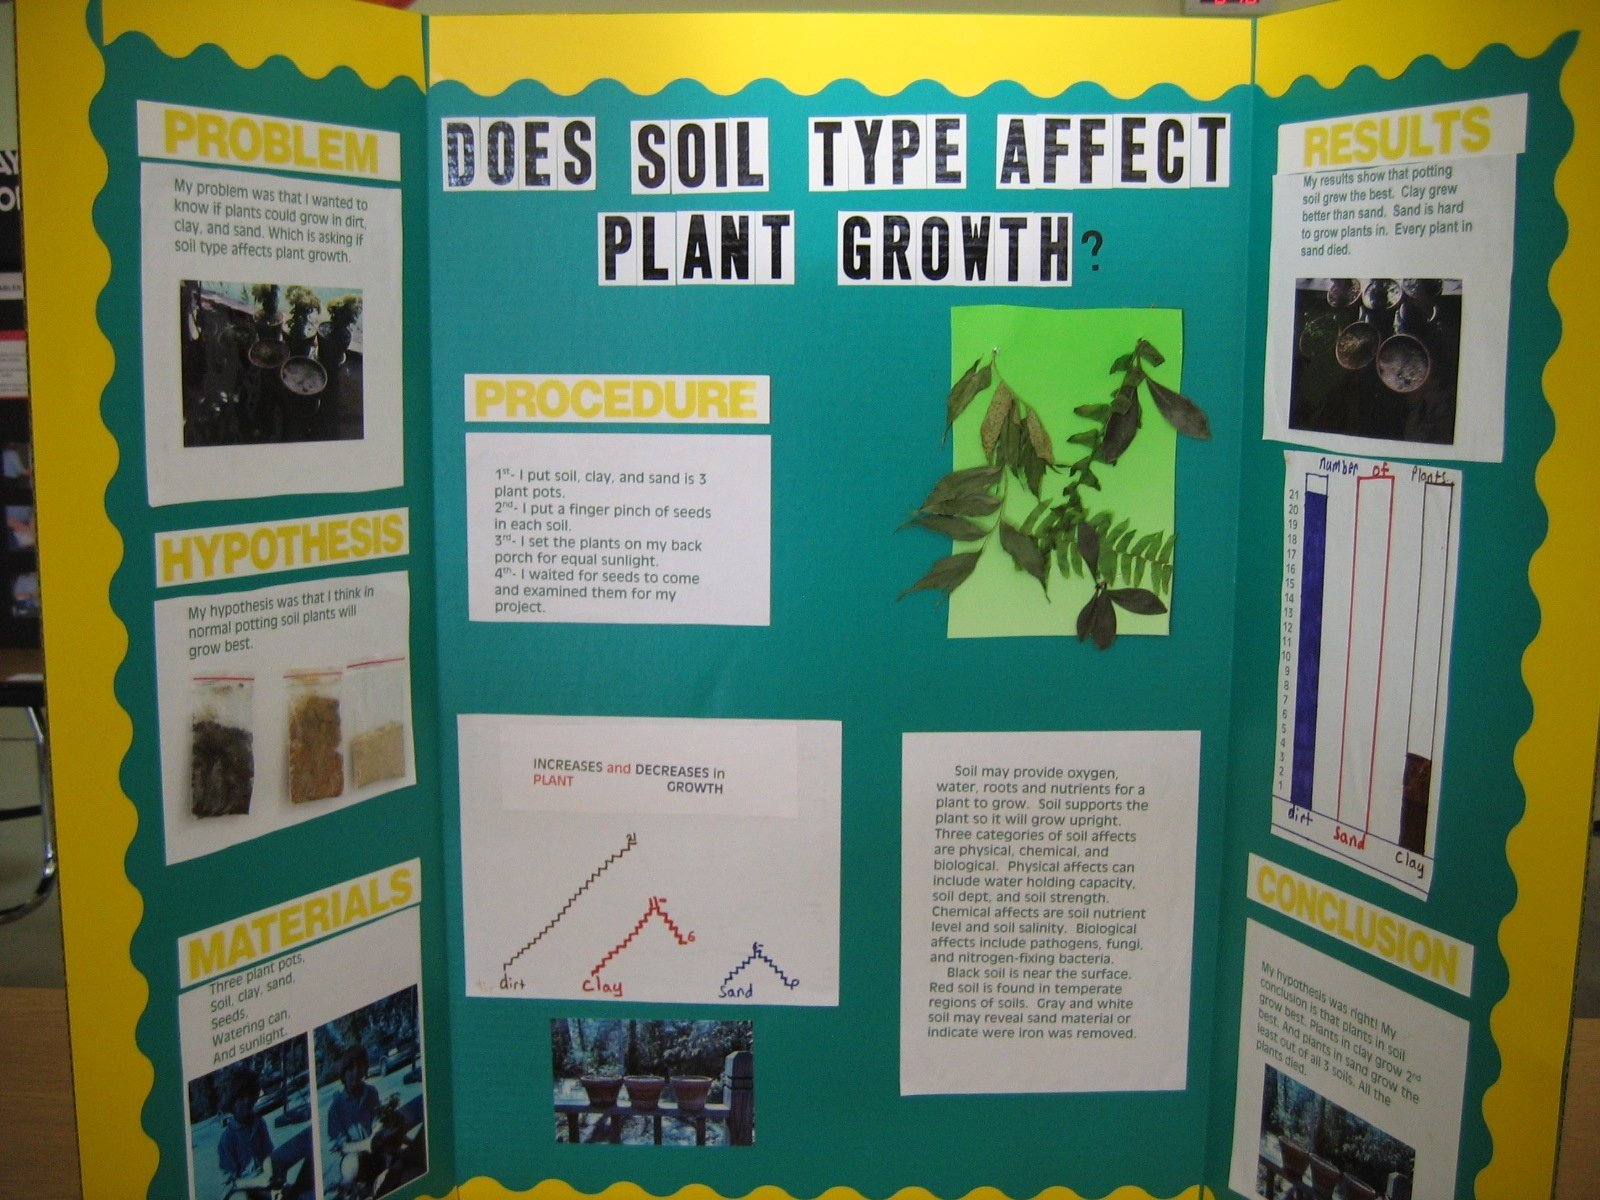 does soil type affect plant growth?